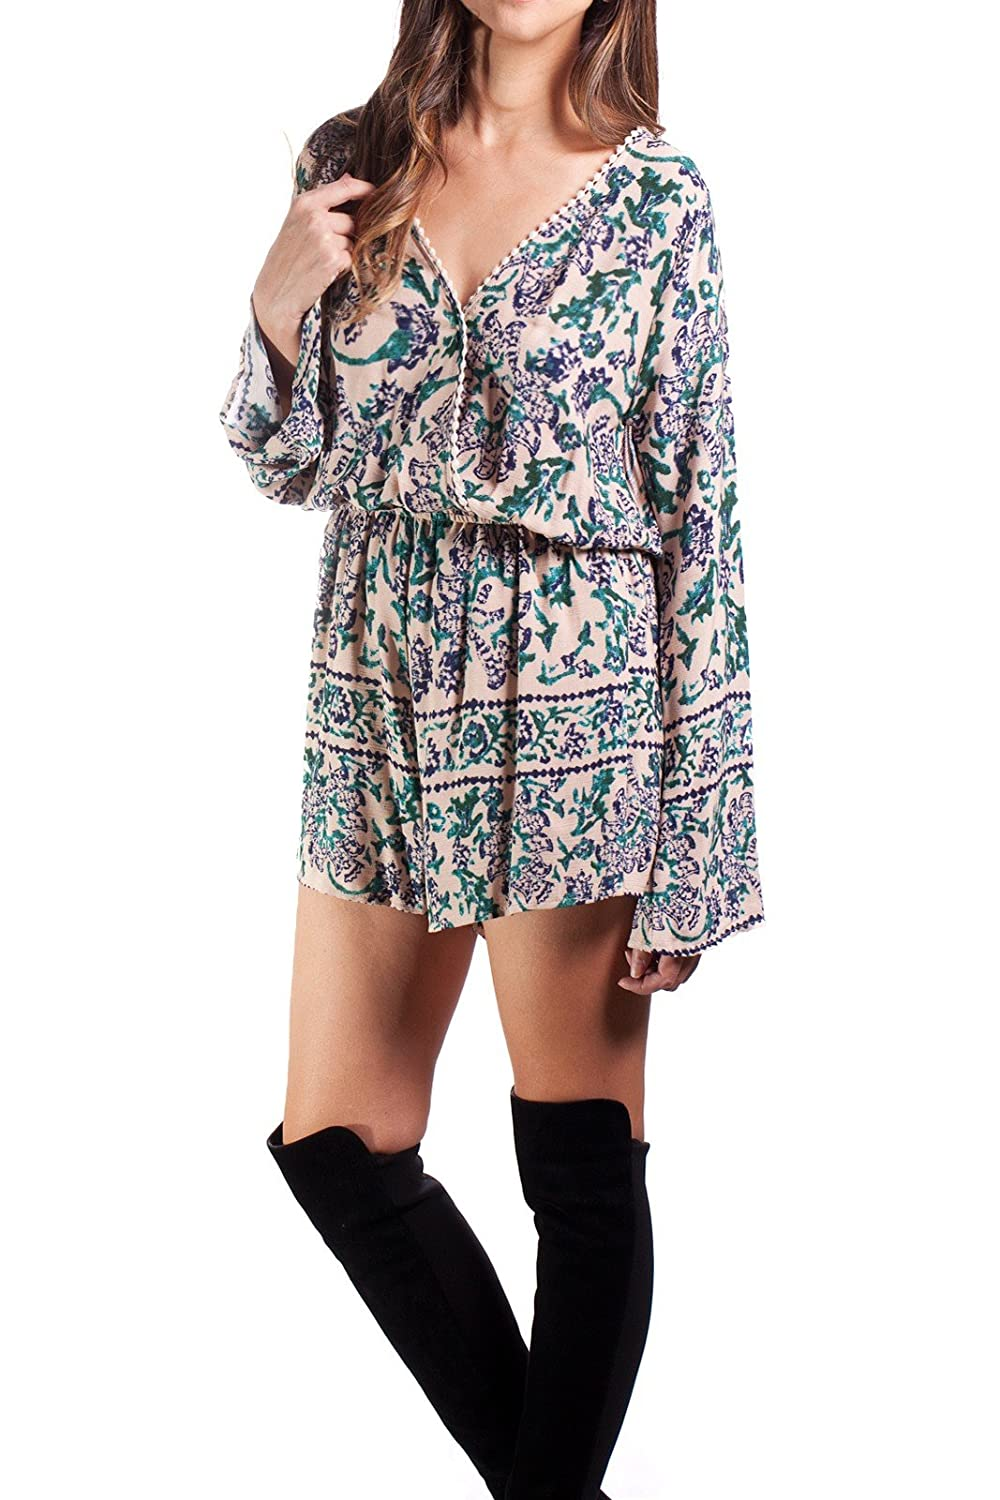 Dazly Juniors Exotic Plunge Macrame Trim Long Sleeve Romper Playsuit